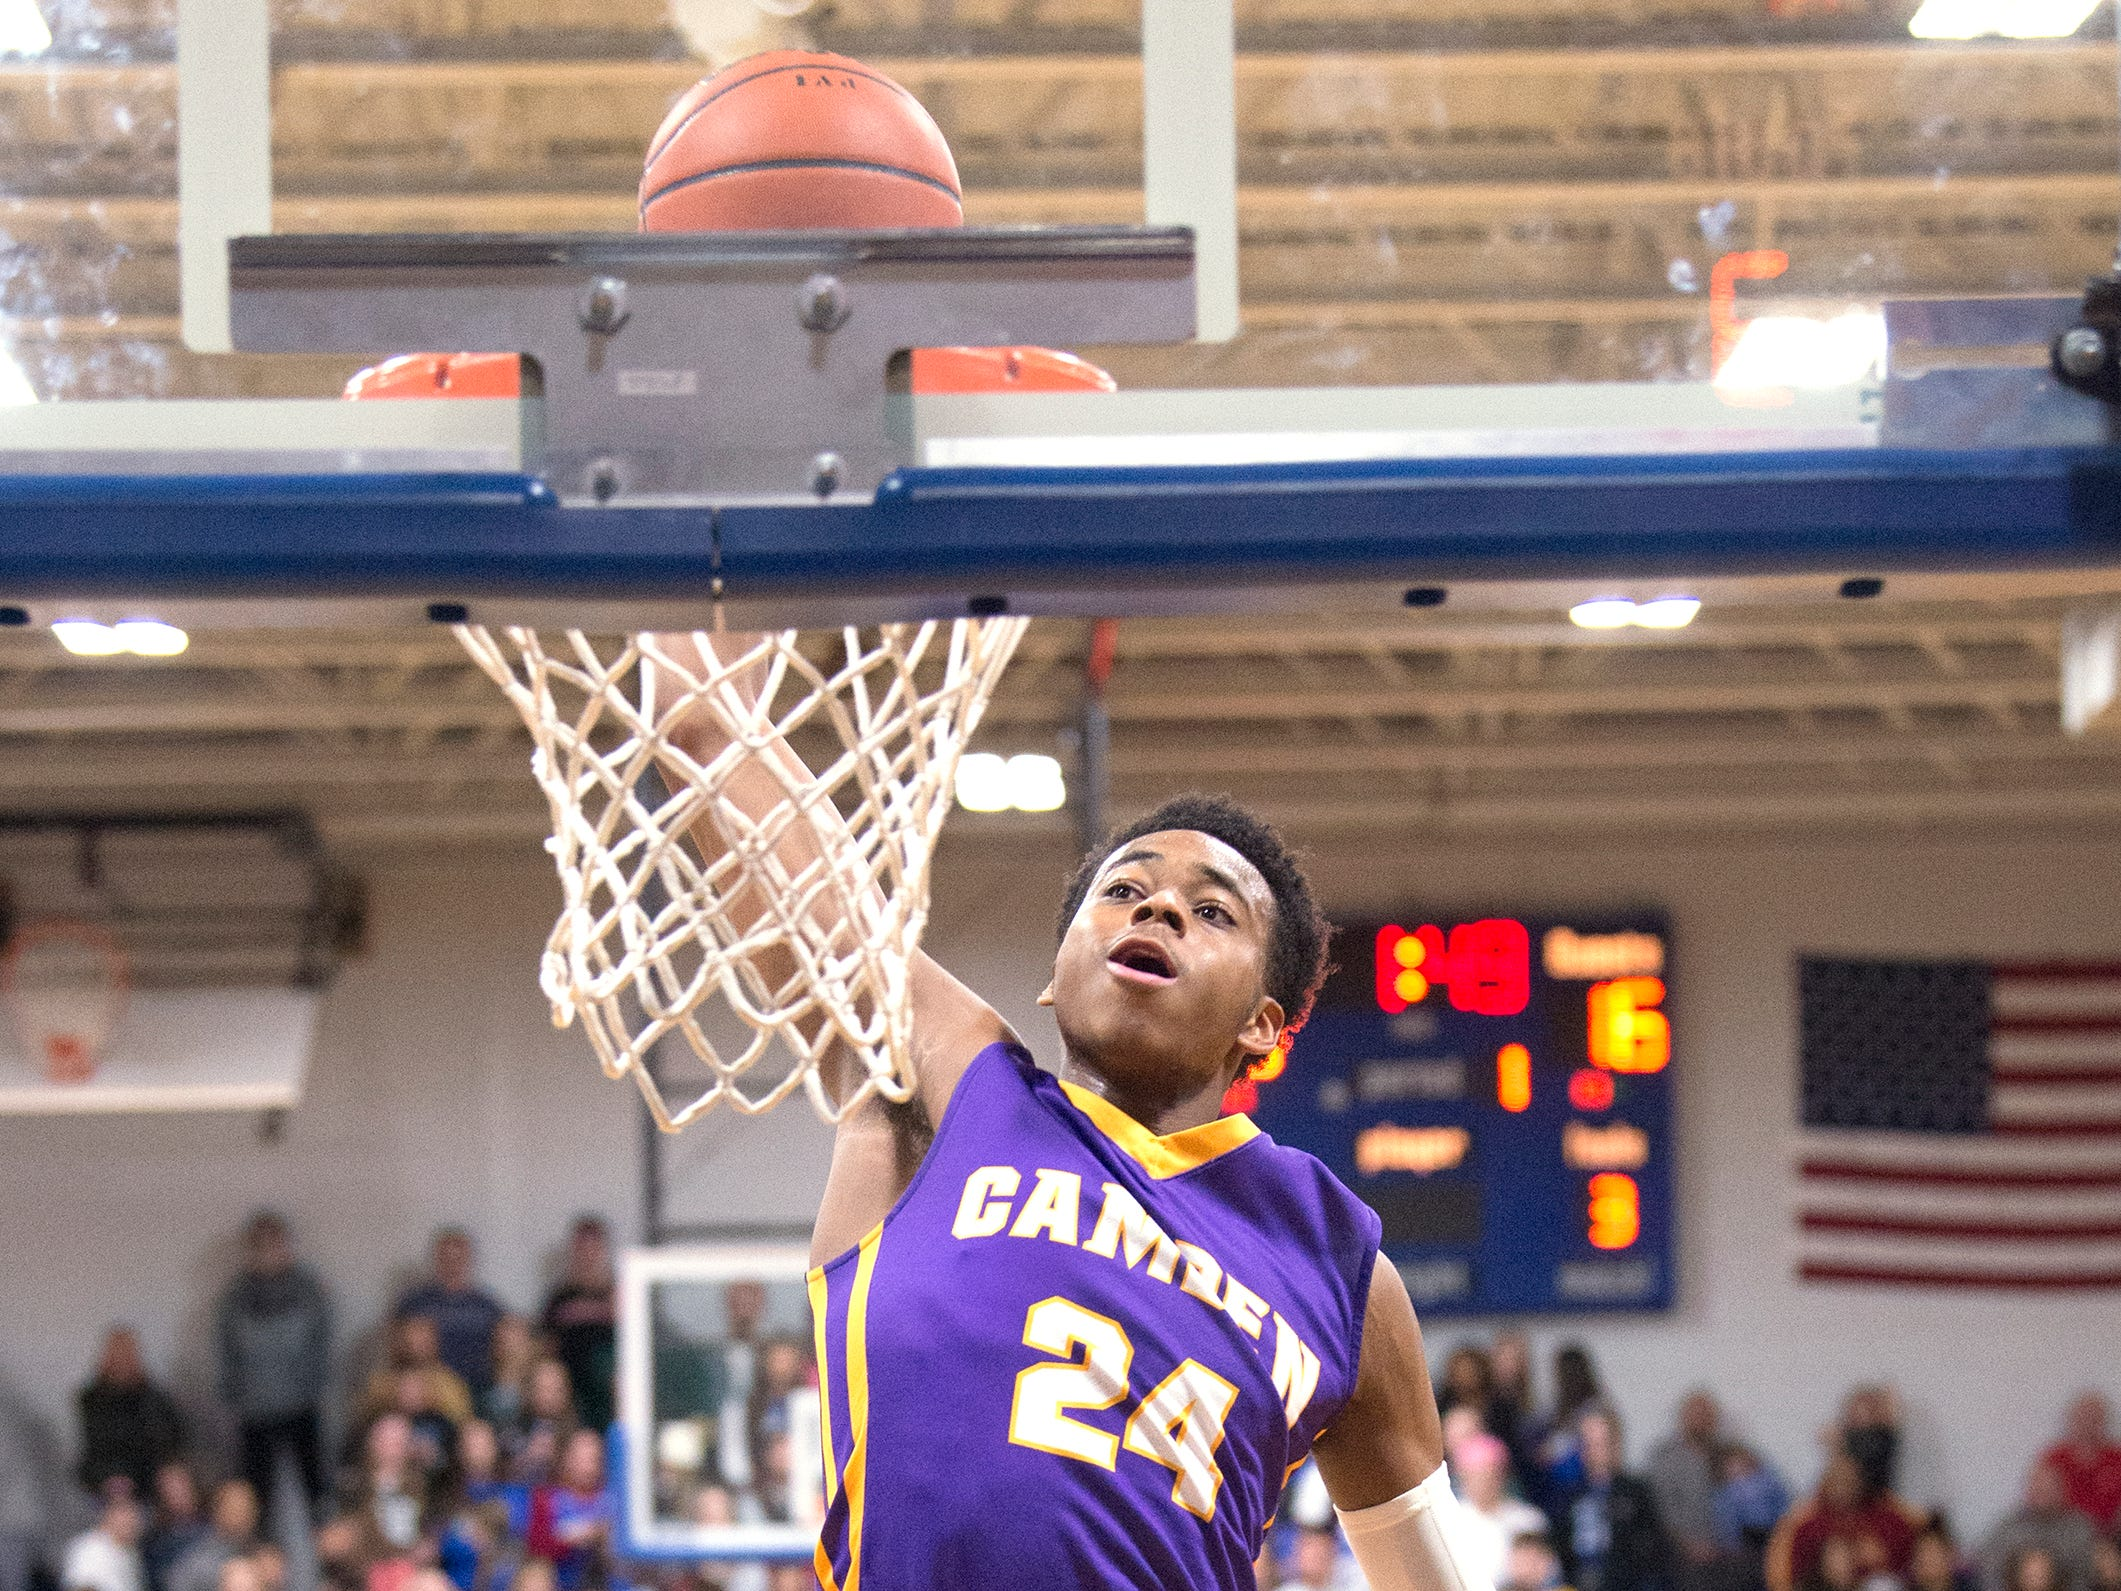 Camden's Jerome Brewer dunks the ball during the 1st quarter of the boys basketball game between Camden and Paul VI, played at Paul VI High School in Haddon Township on Thursday, January 10, 2019.  Camden won, 63 -57.